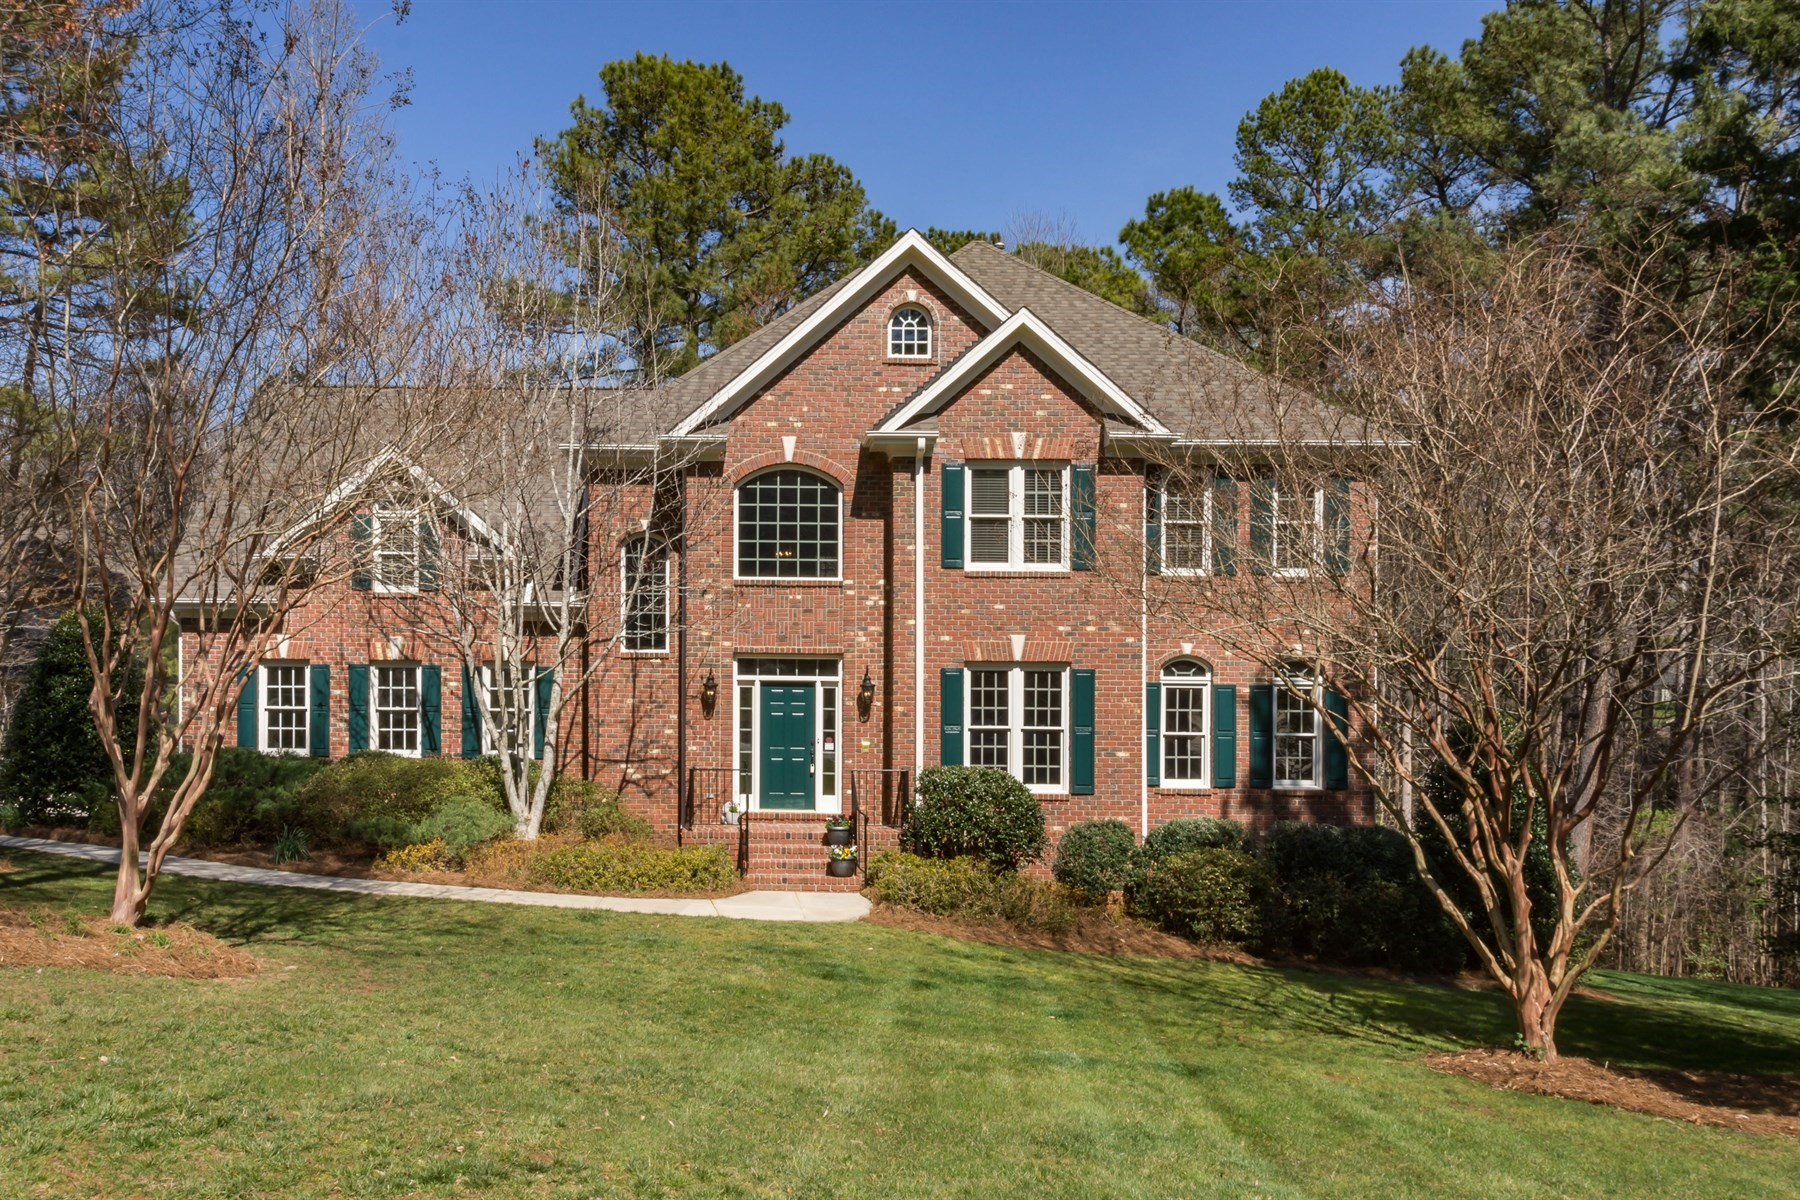 Single Family Home for Sale at 1312 Kinsdale Drive Raleigh, North Carolina, 27615 United StatesIn/Around: Cary, Chapel Hill, Durham